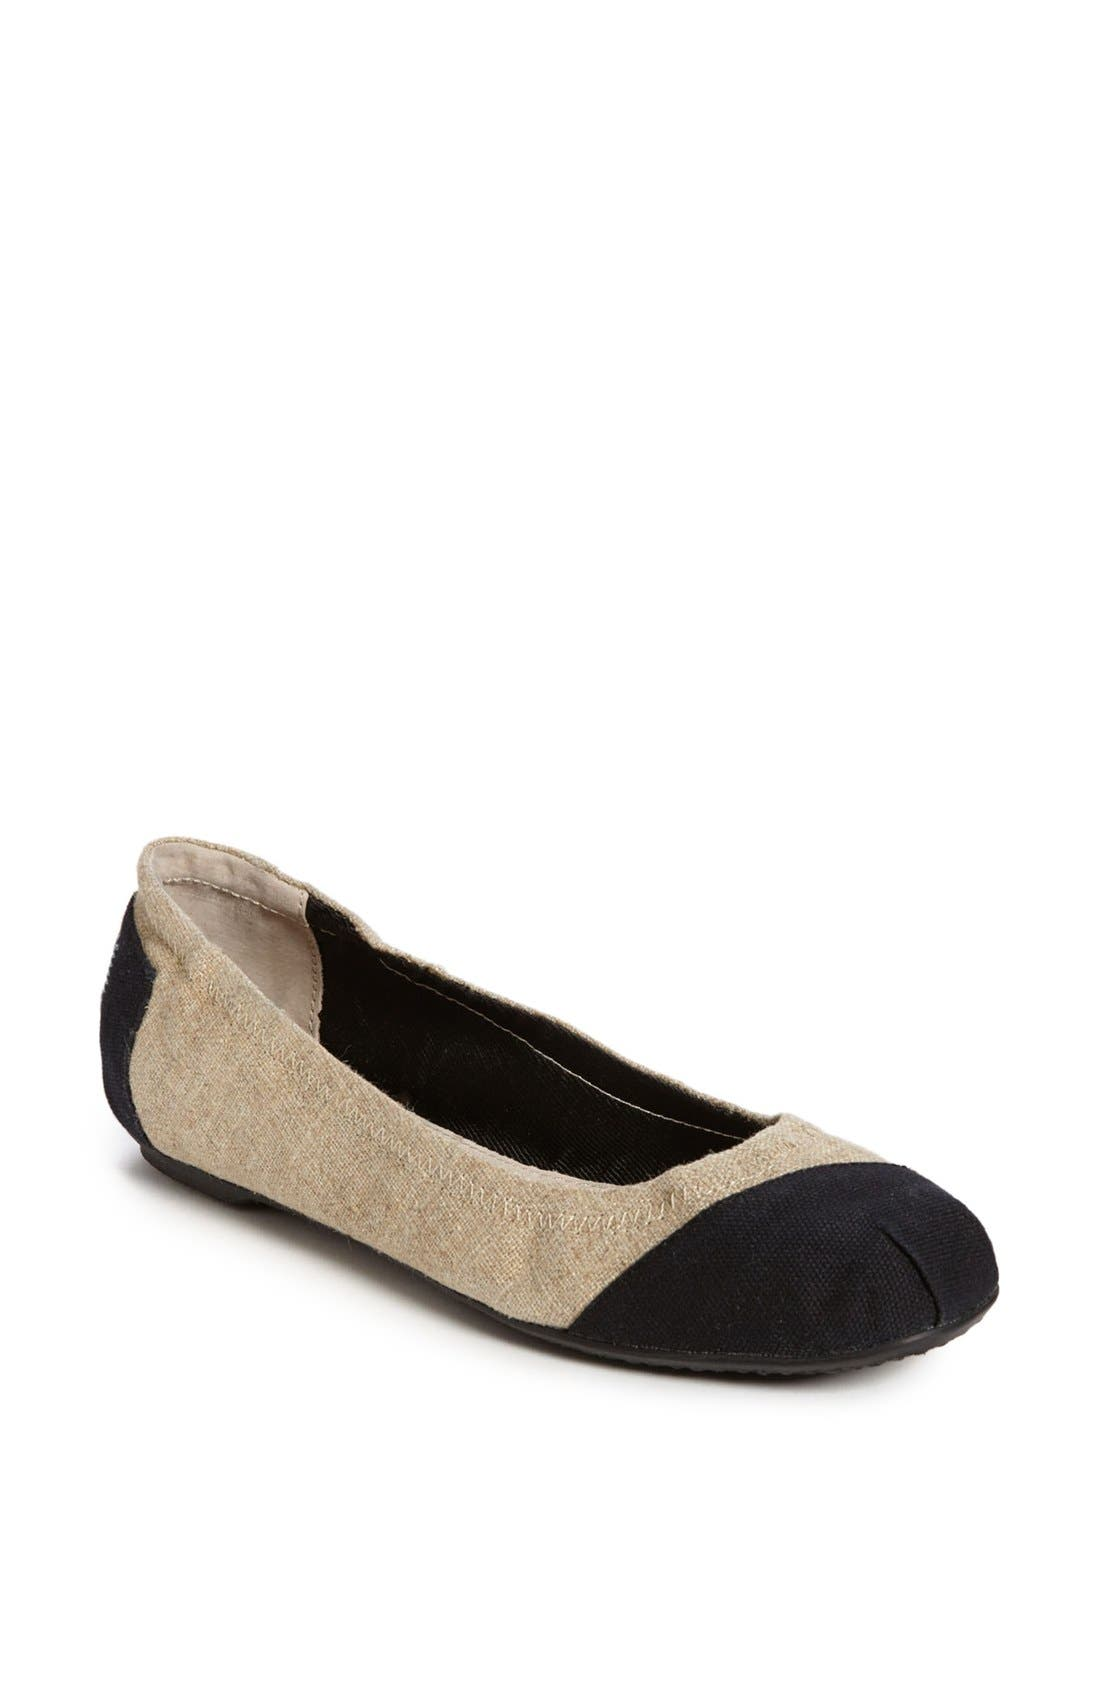 Alternate Image 1 Selected - TOMS 'Alessandra' Ballet Flat